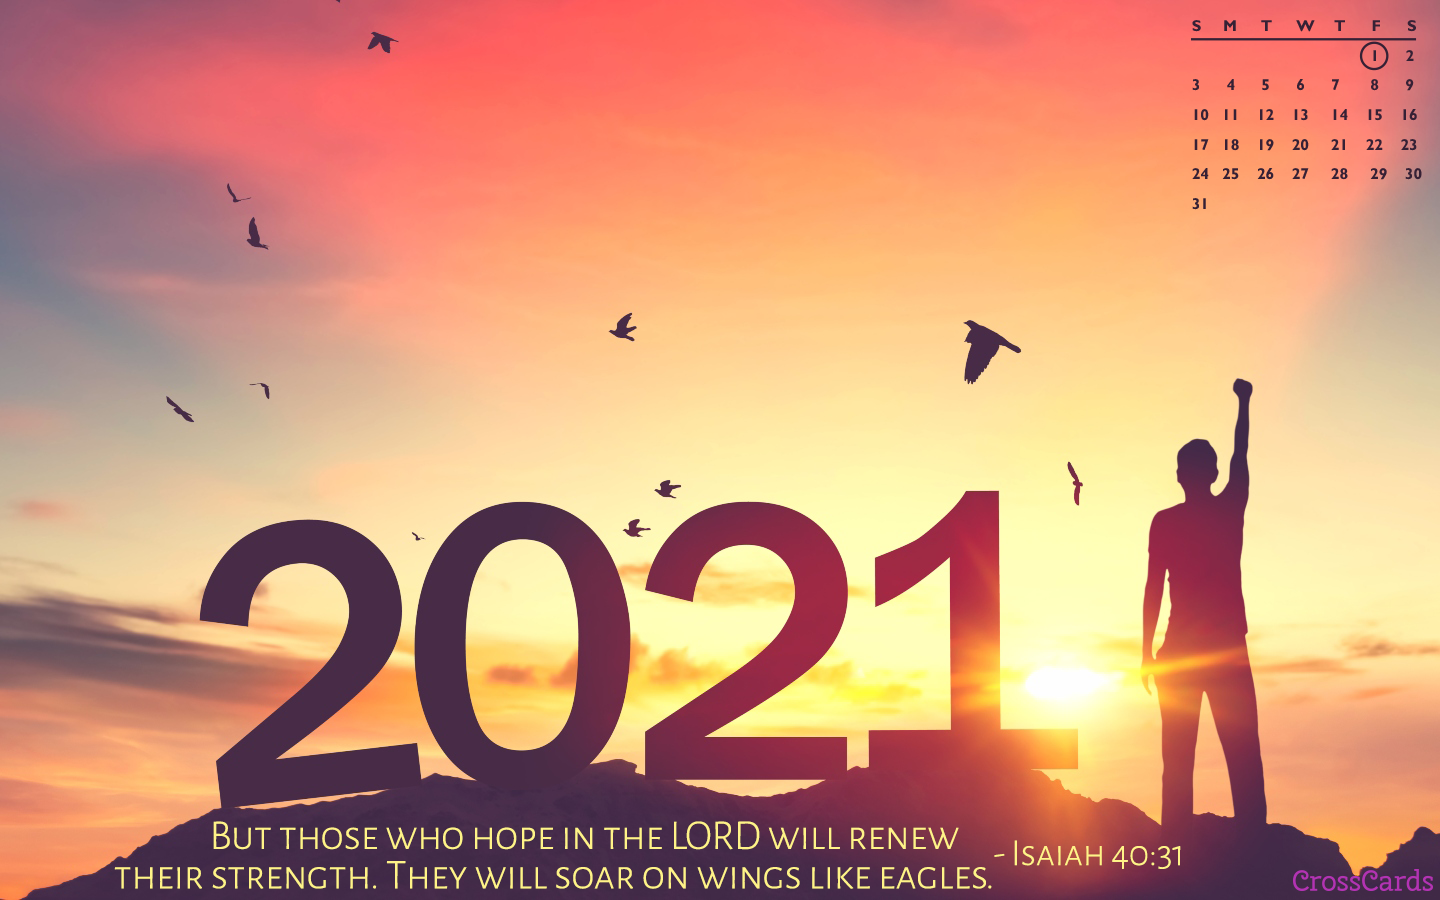 January 2021 - Hope in the Lord mobile phone wallpaper